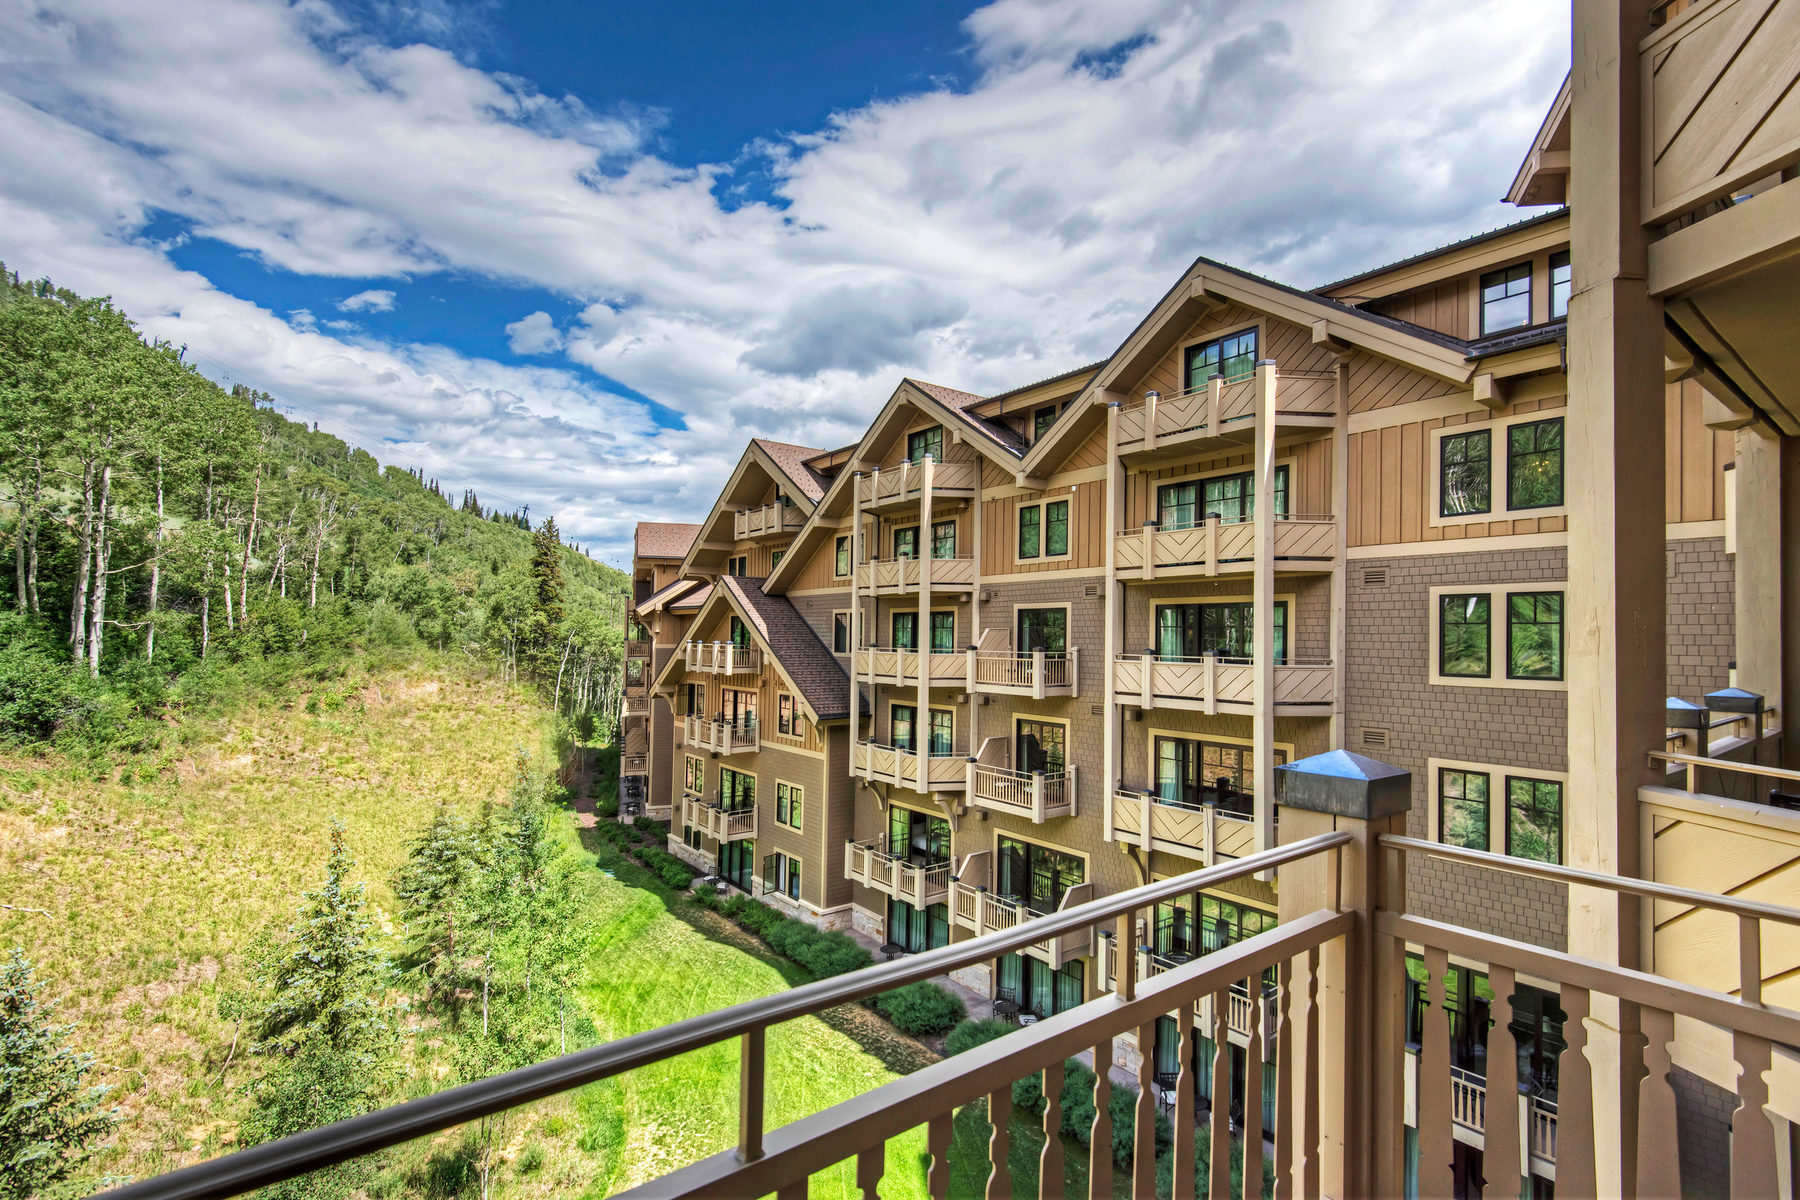 共管物業 為 出售 在 Montage Residences at Deer Valley 9100 Marsac Ave #933/935 Park City, 猶他州, 84060 美國